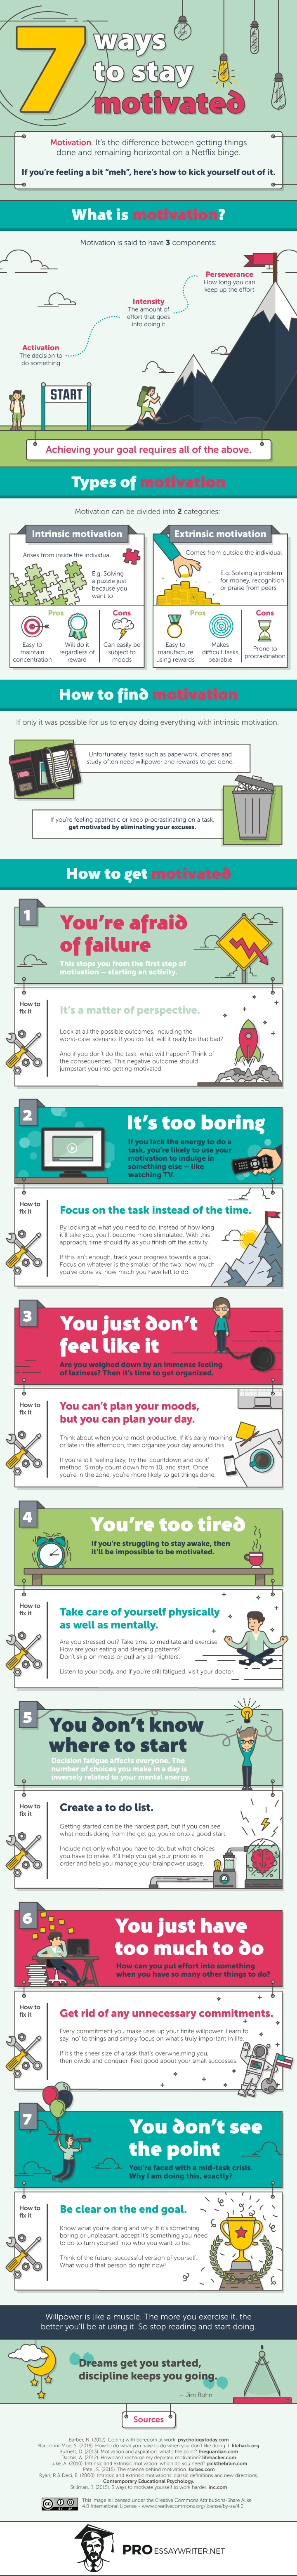 7 Ways to Stay Motivated at Work